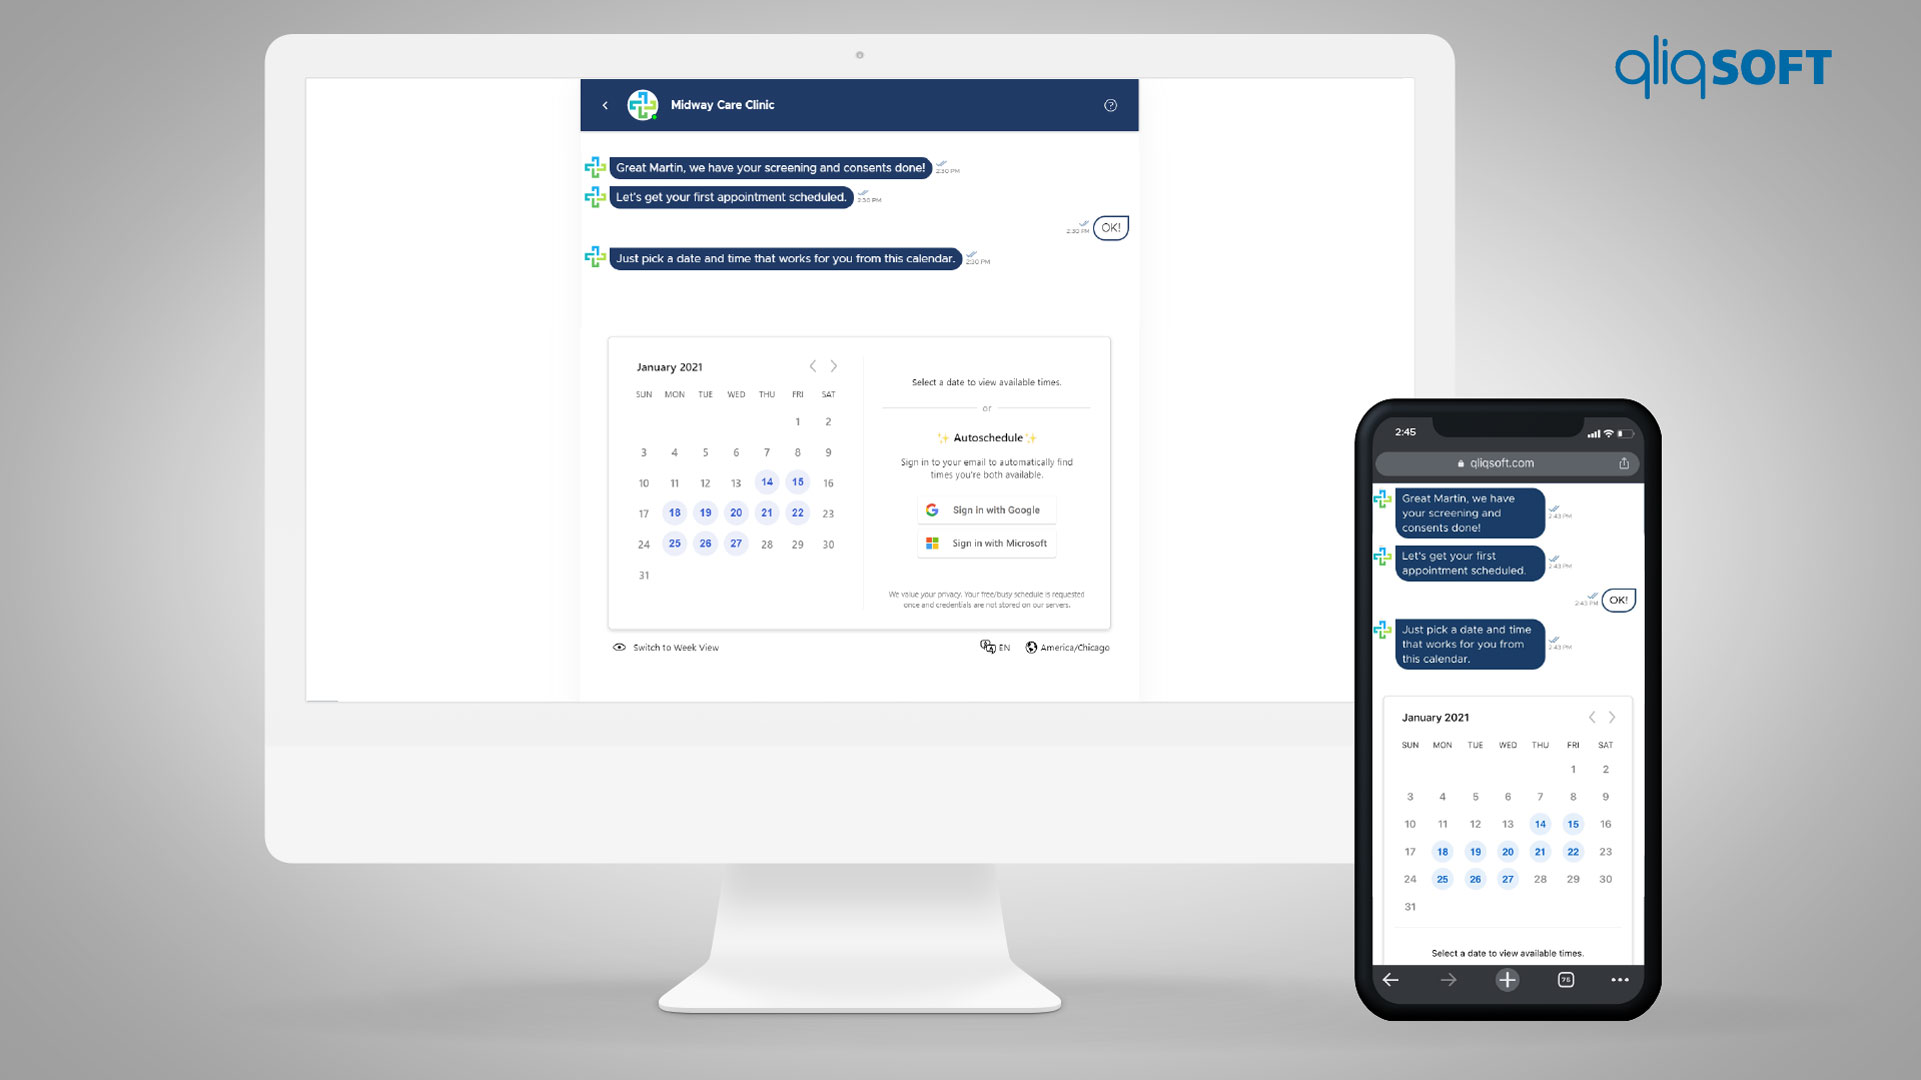 QliqSOFT Announces Integrated Self-Scheduling Into COVID-19 Vaccine Assistant Chatbot